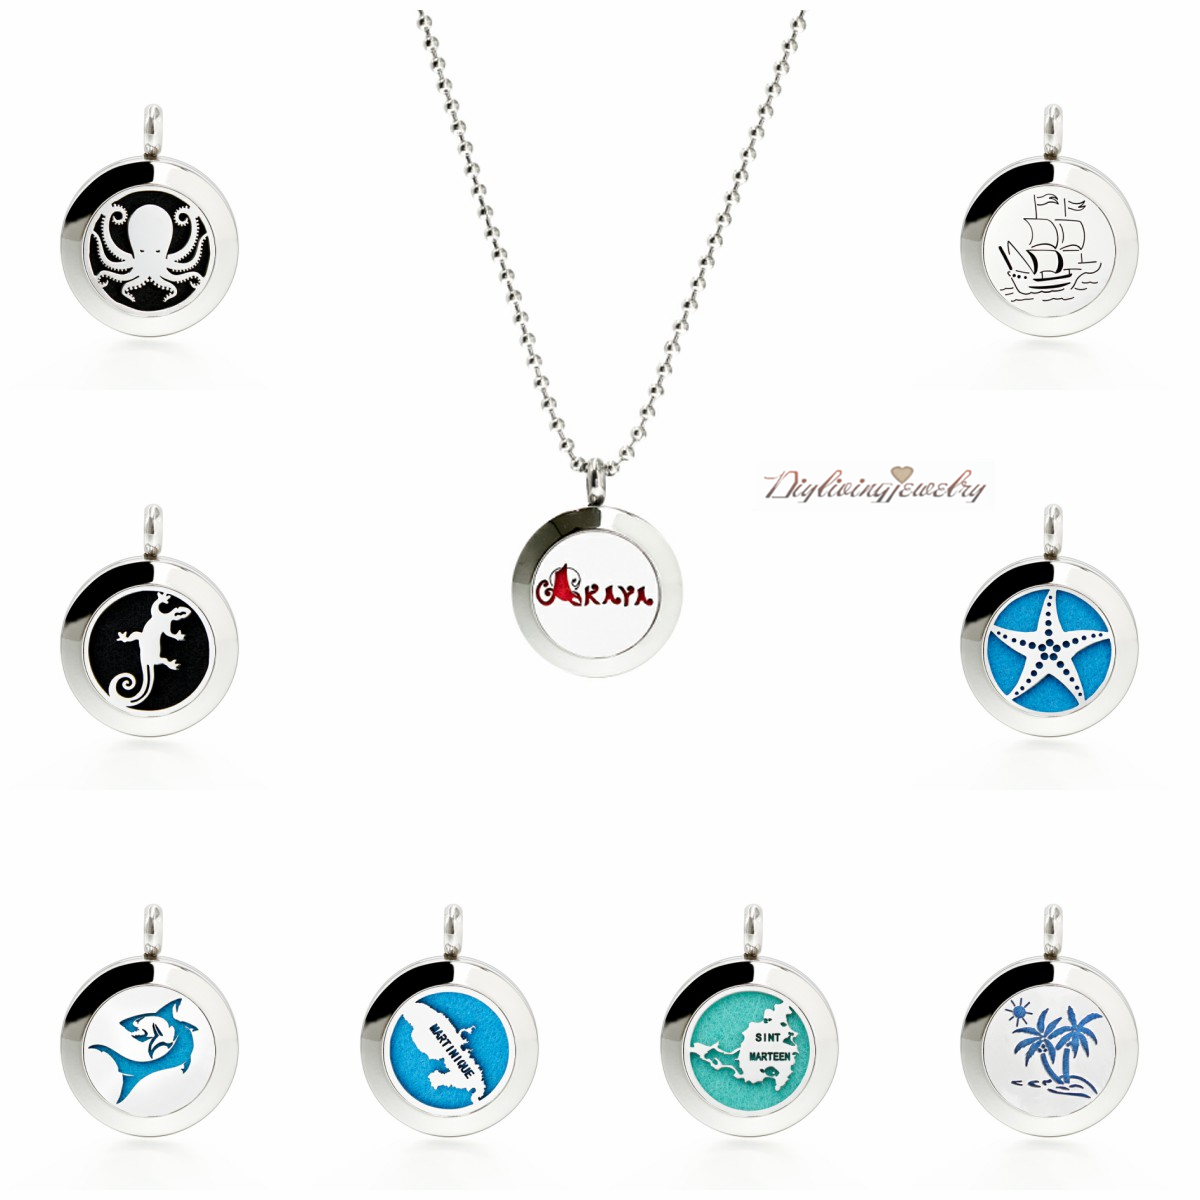 Hot 25mm Alloy Aromatherapy Essential Oil Diffuser Locket Pendant with Necklace